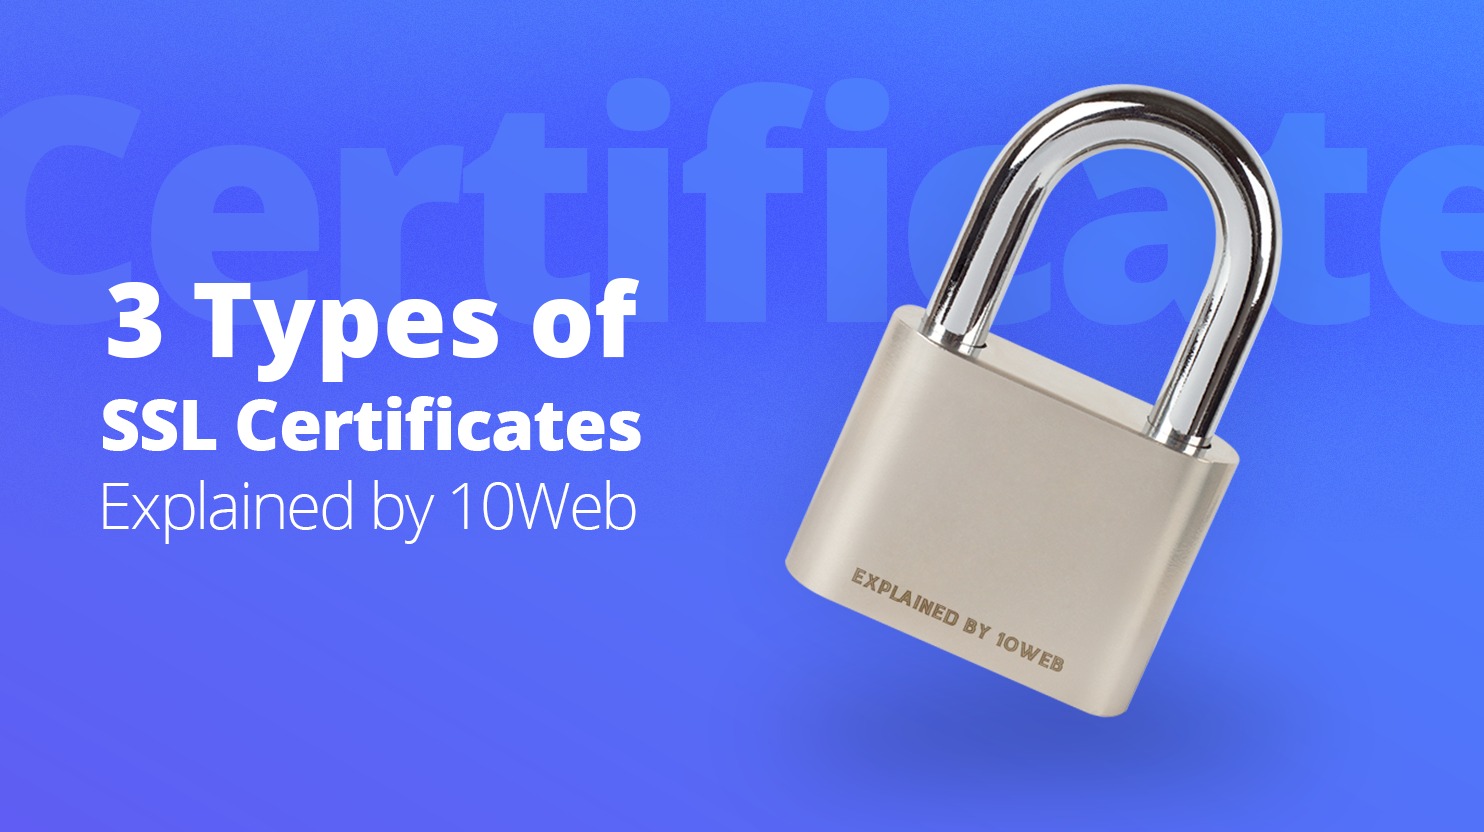 Silver lock, next to it it says '3 types of ssl certificate explained by 10Web'